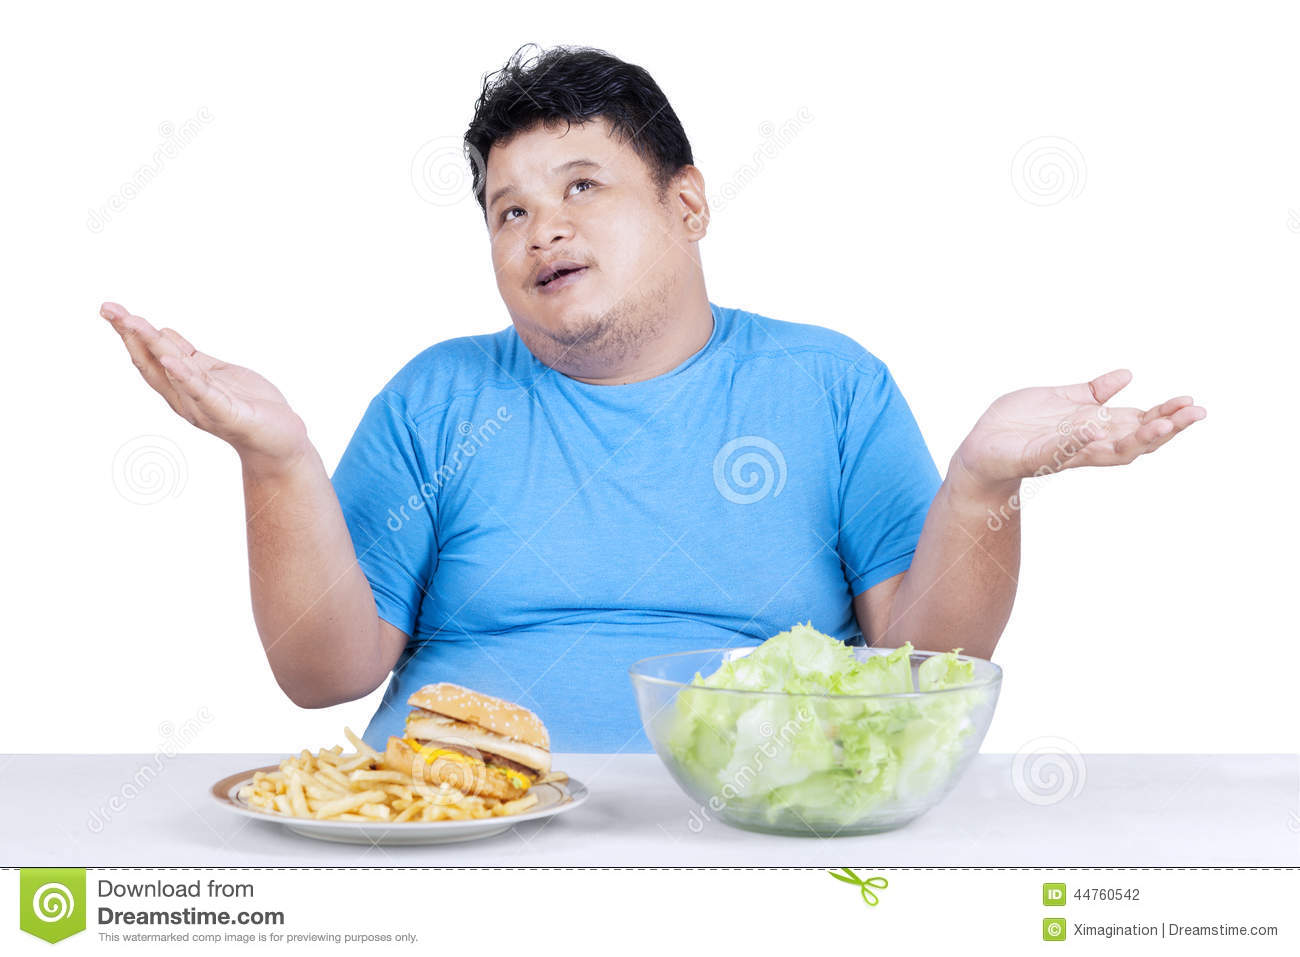 Image result for image of overweight person